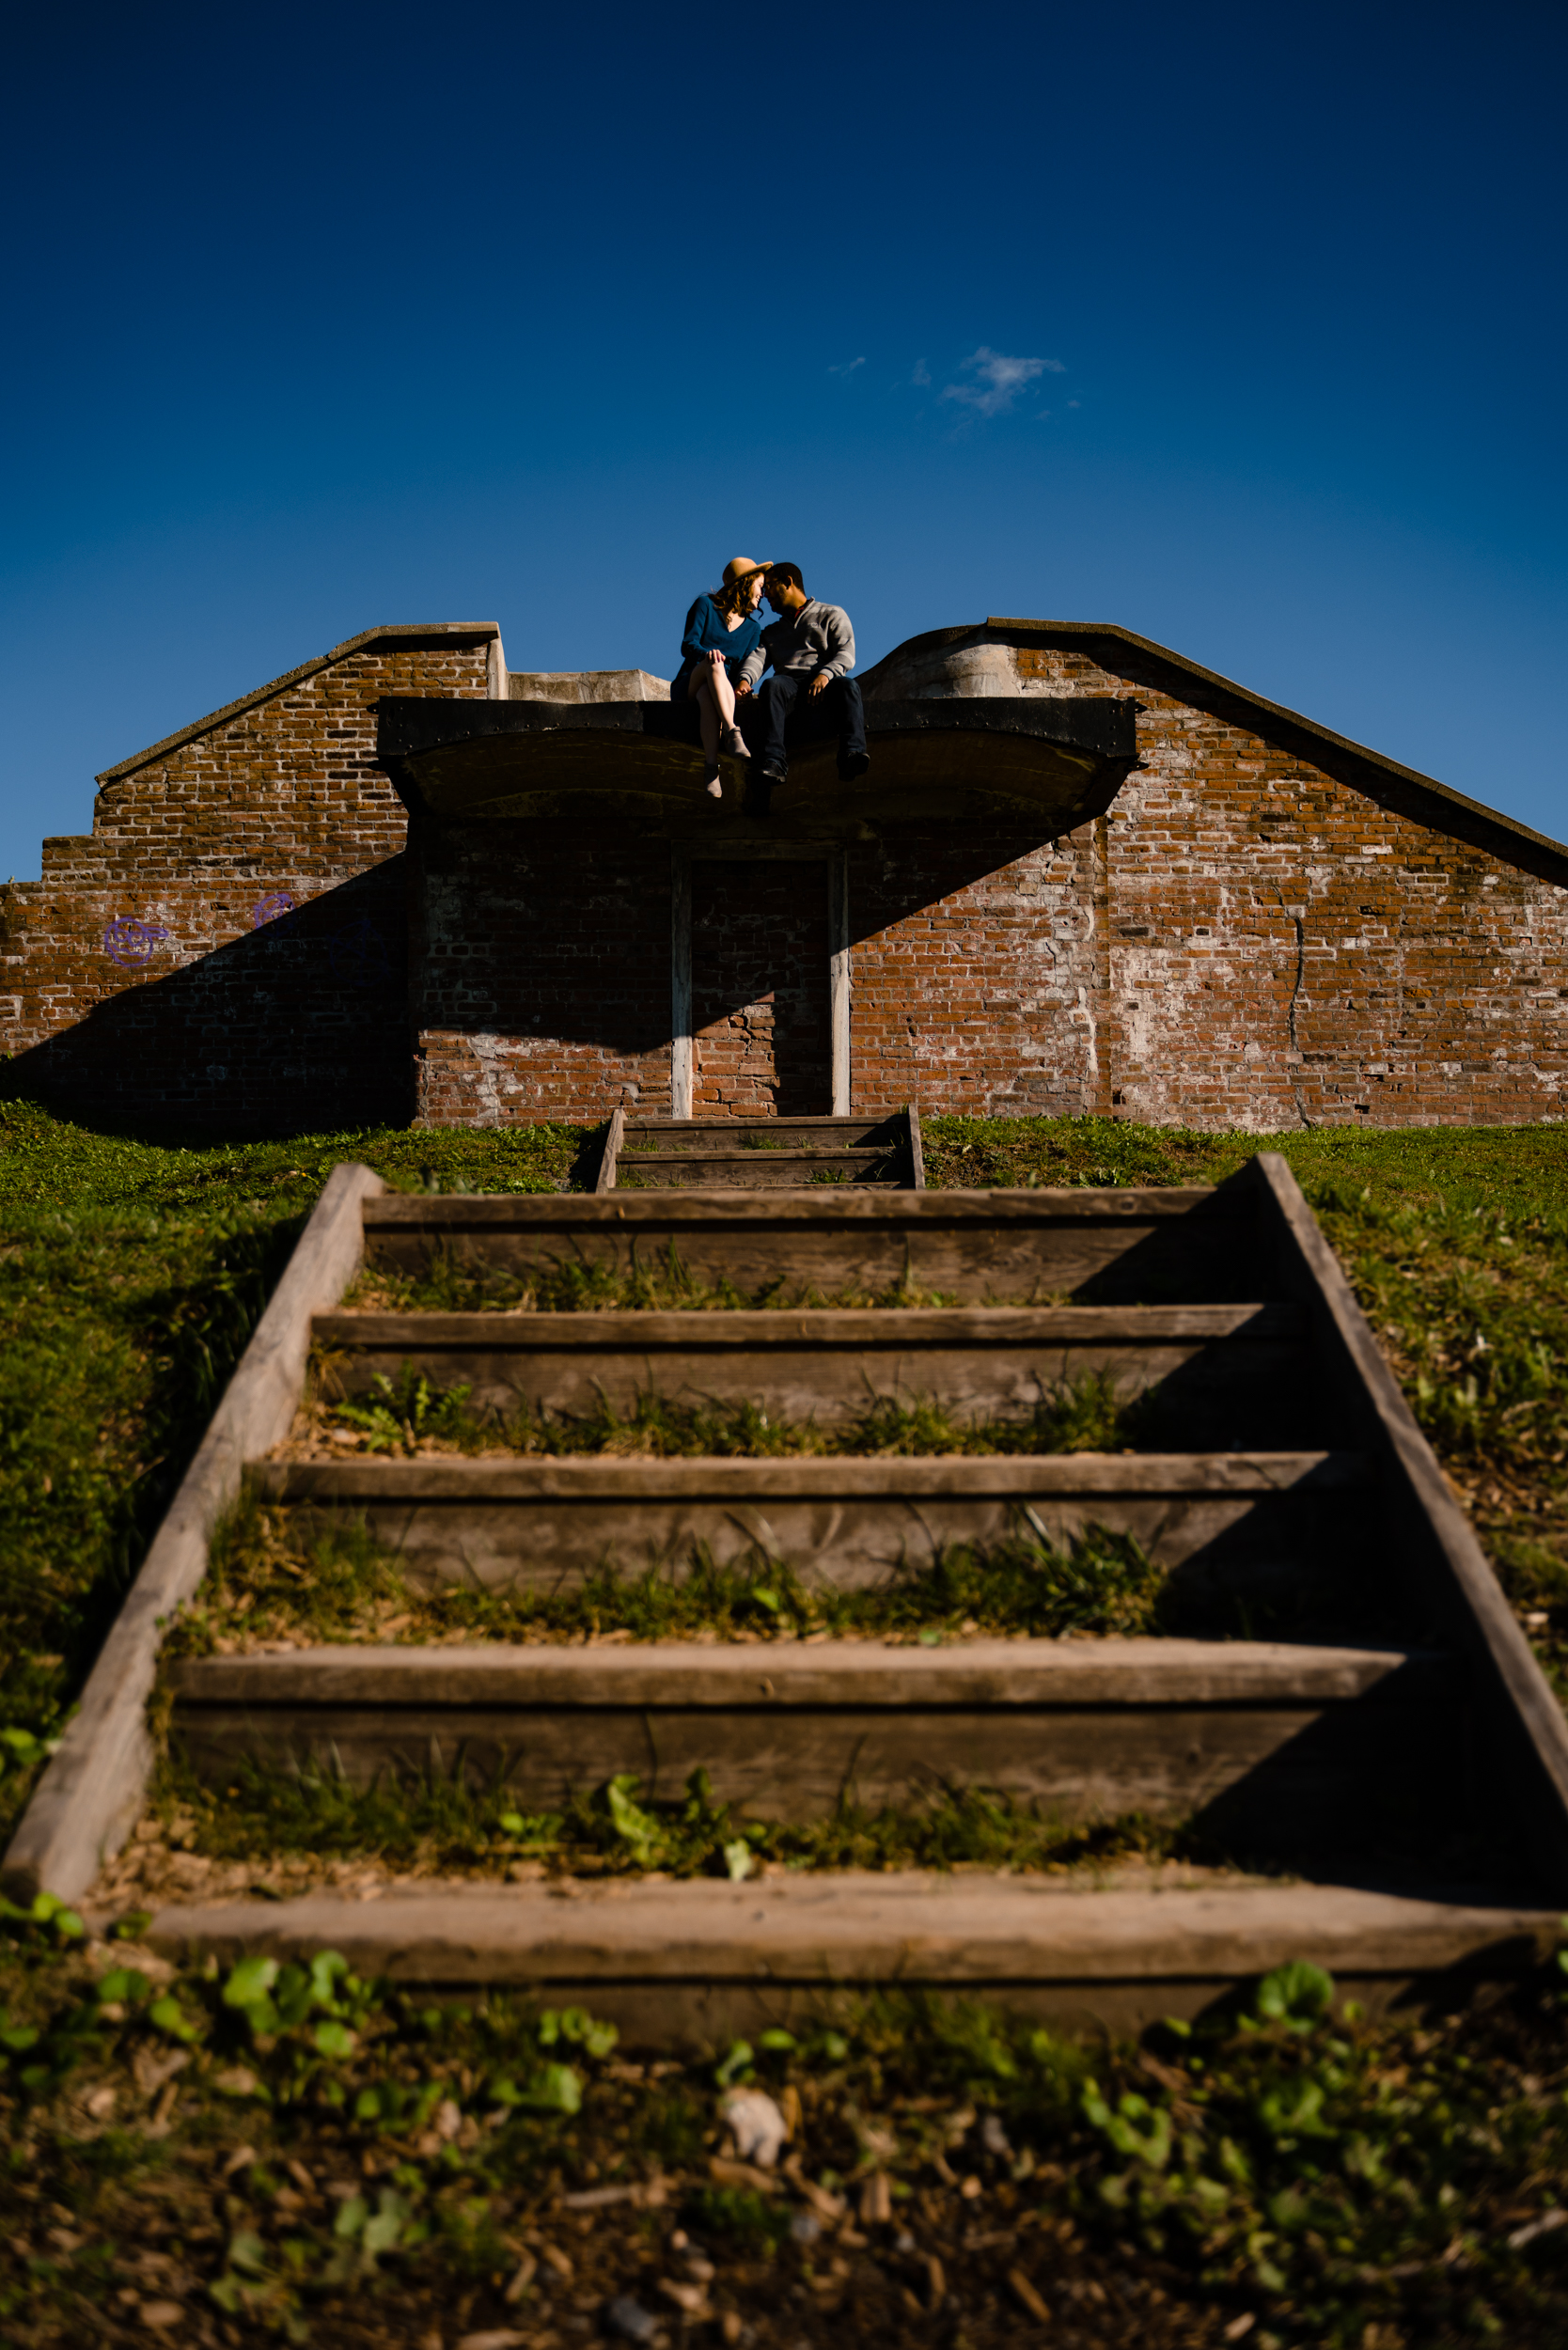 Wedding-halifax-engagement-nova-scotia-ottawa-ontario-pointpleasantpark-Fall-Autumn (7 of 53).jpg